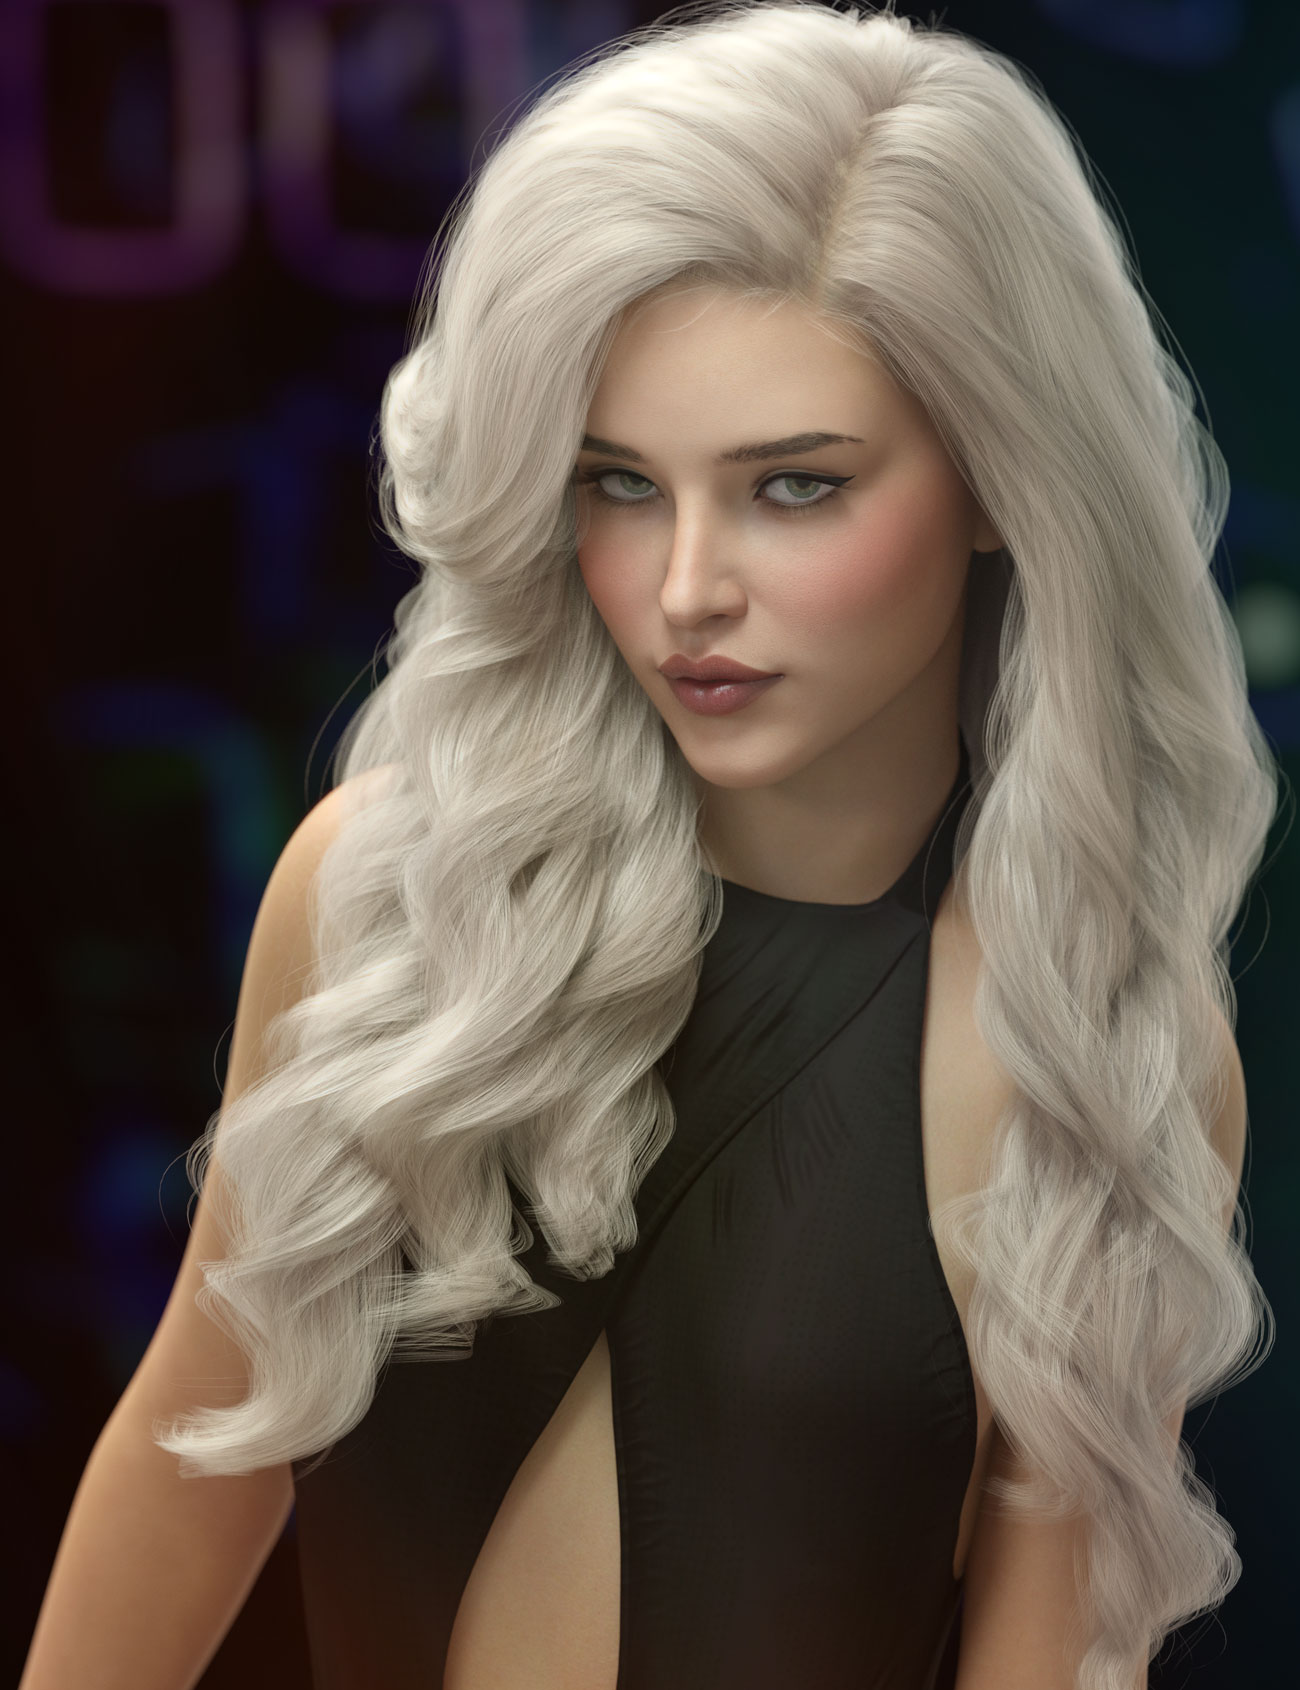 Ursula Hair for Genesis 3, 8, and 8.1 Females by: AprilYSH, 3D Models by Daz 3D